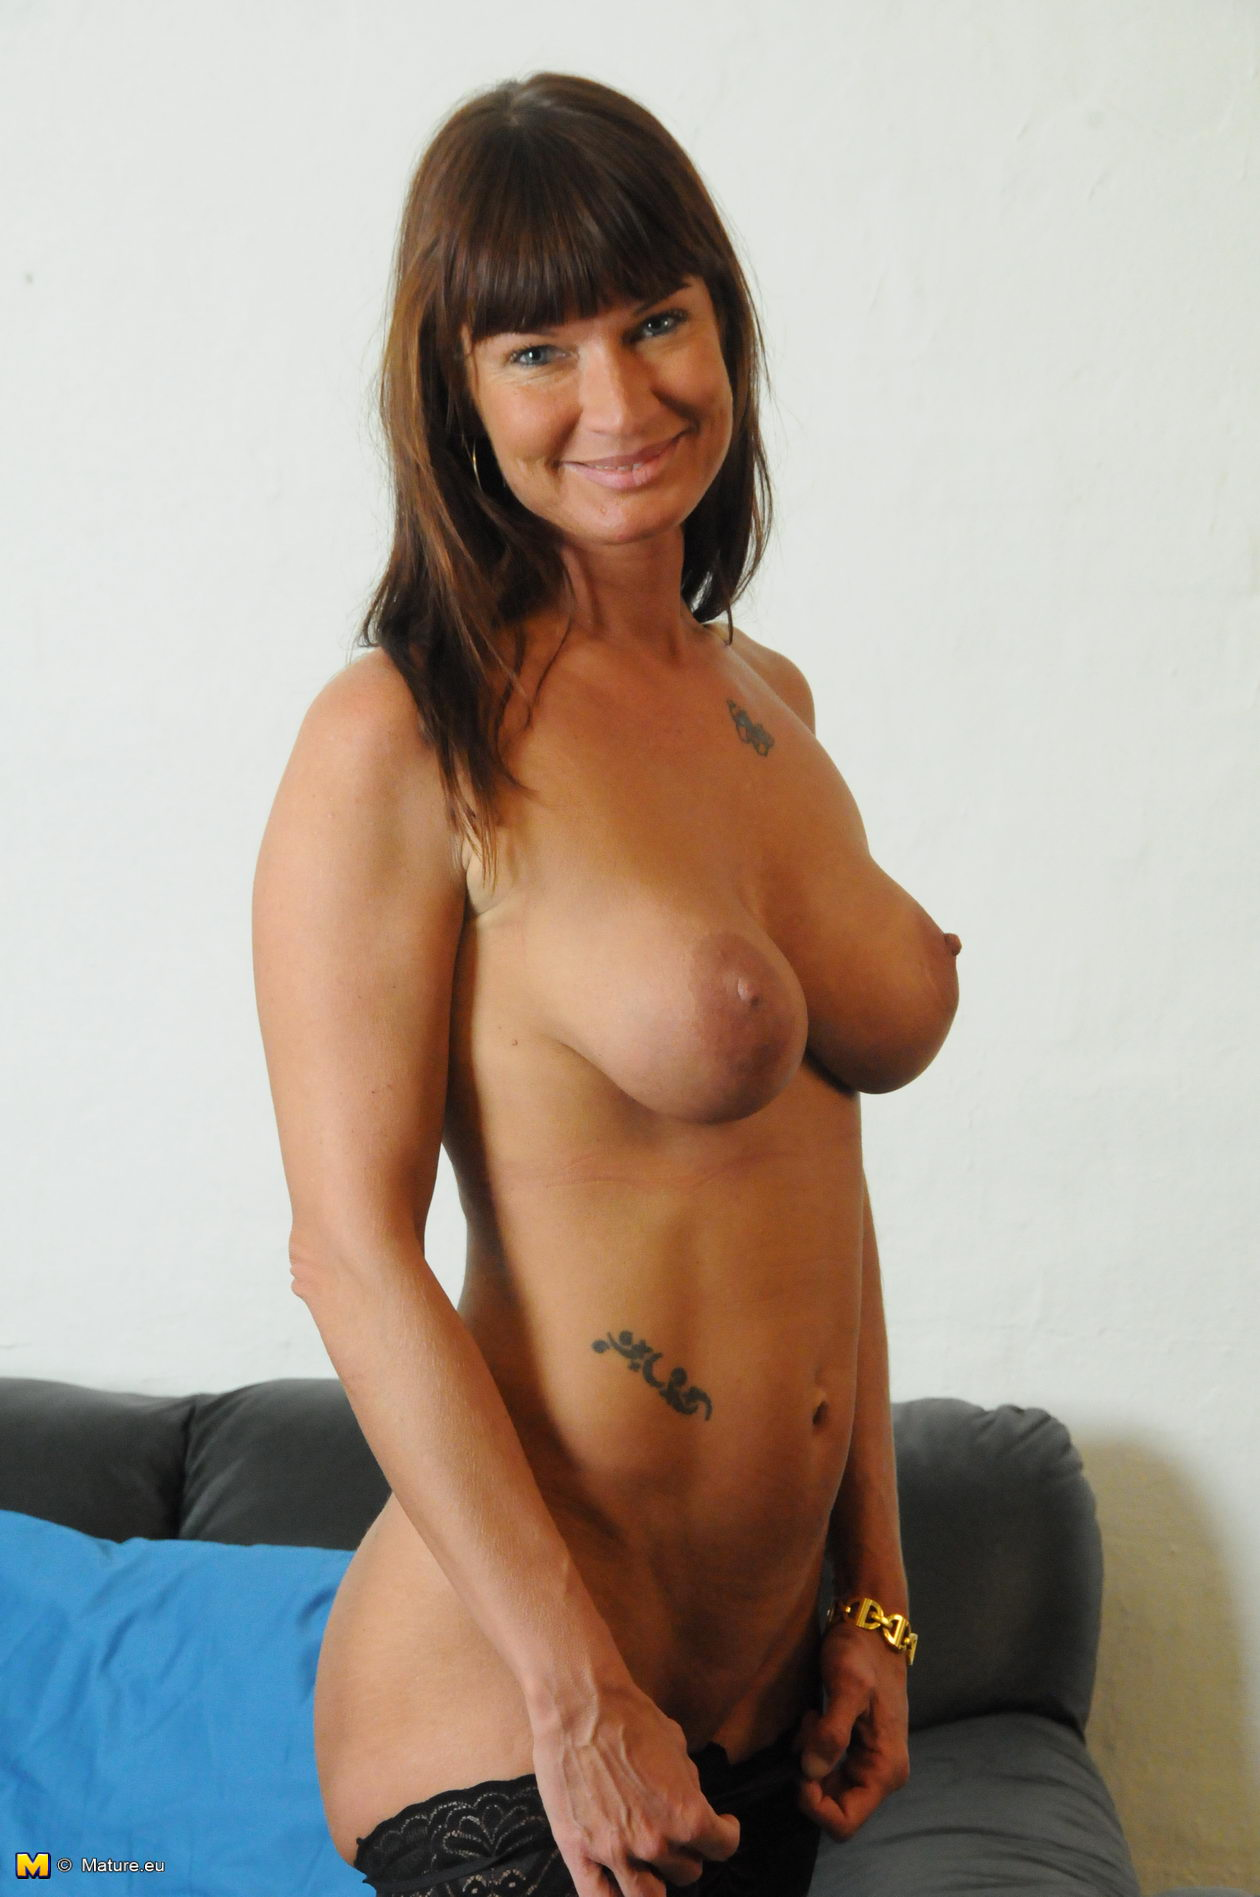 Hot milf and her younger lover 20 1